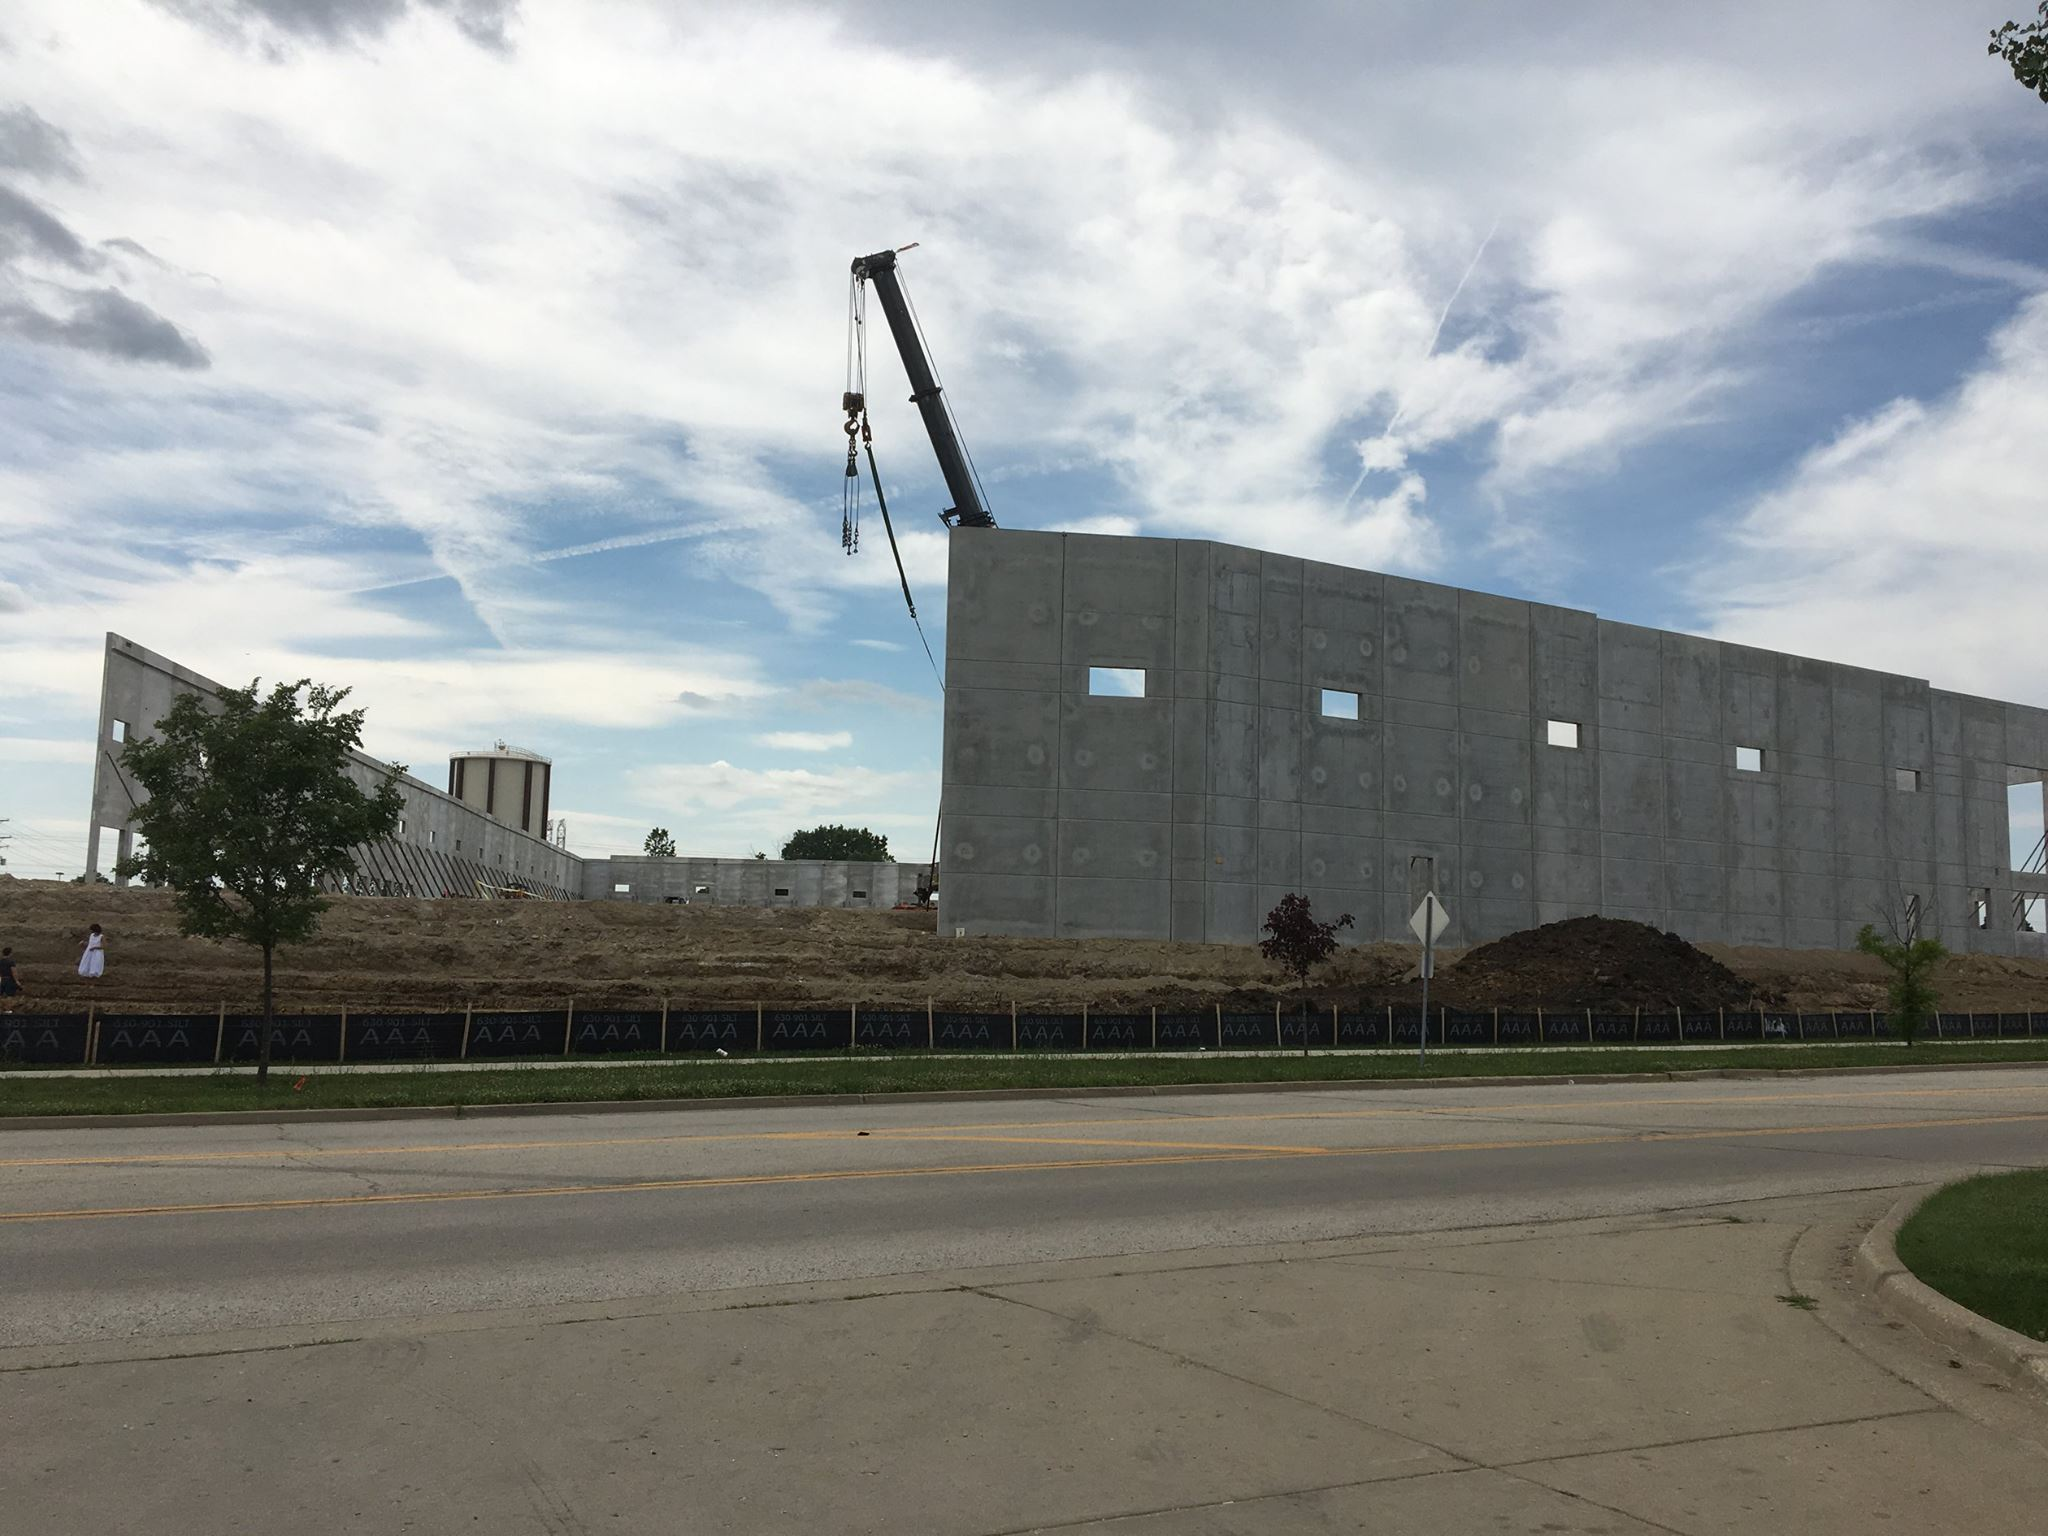 720 Northgate Parkway - Construction Update 3